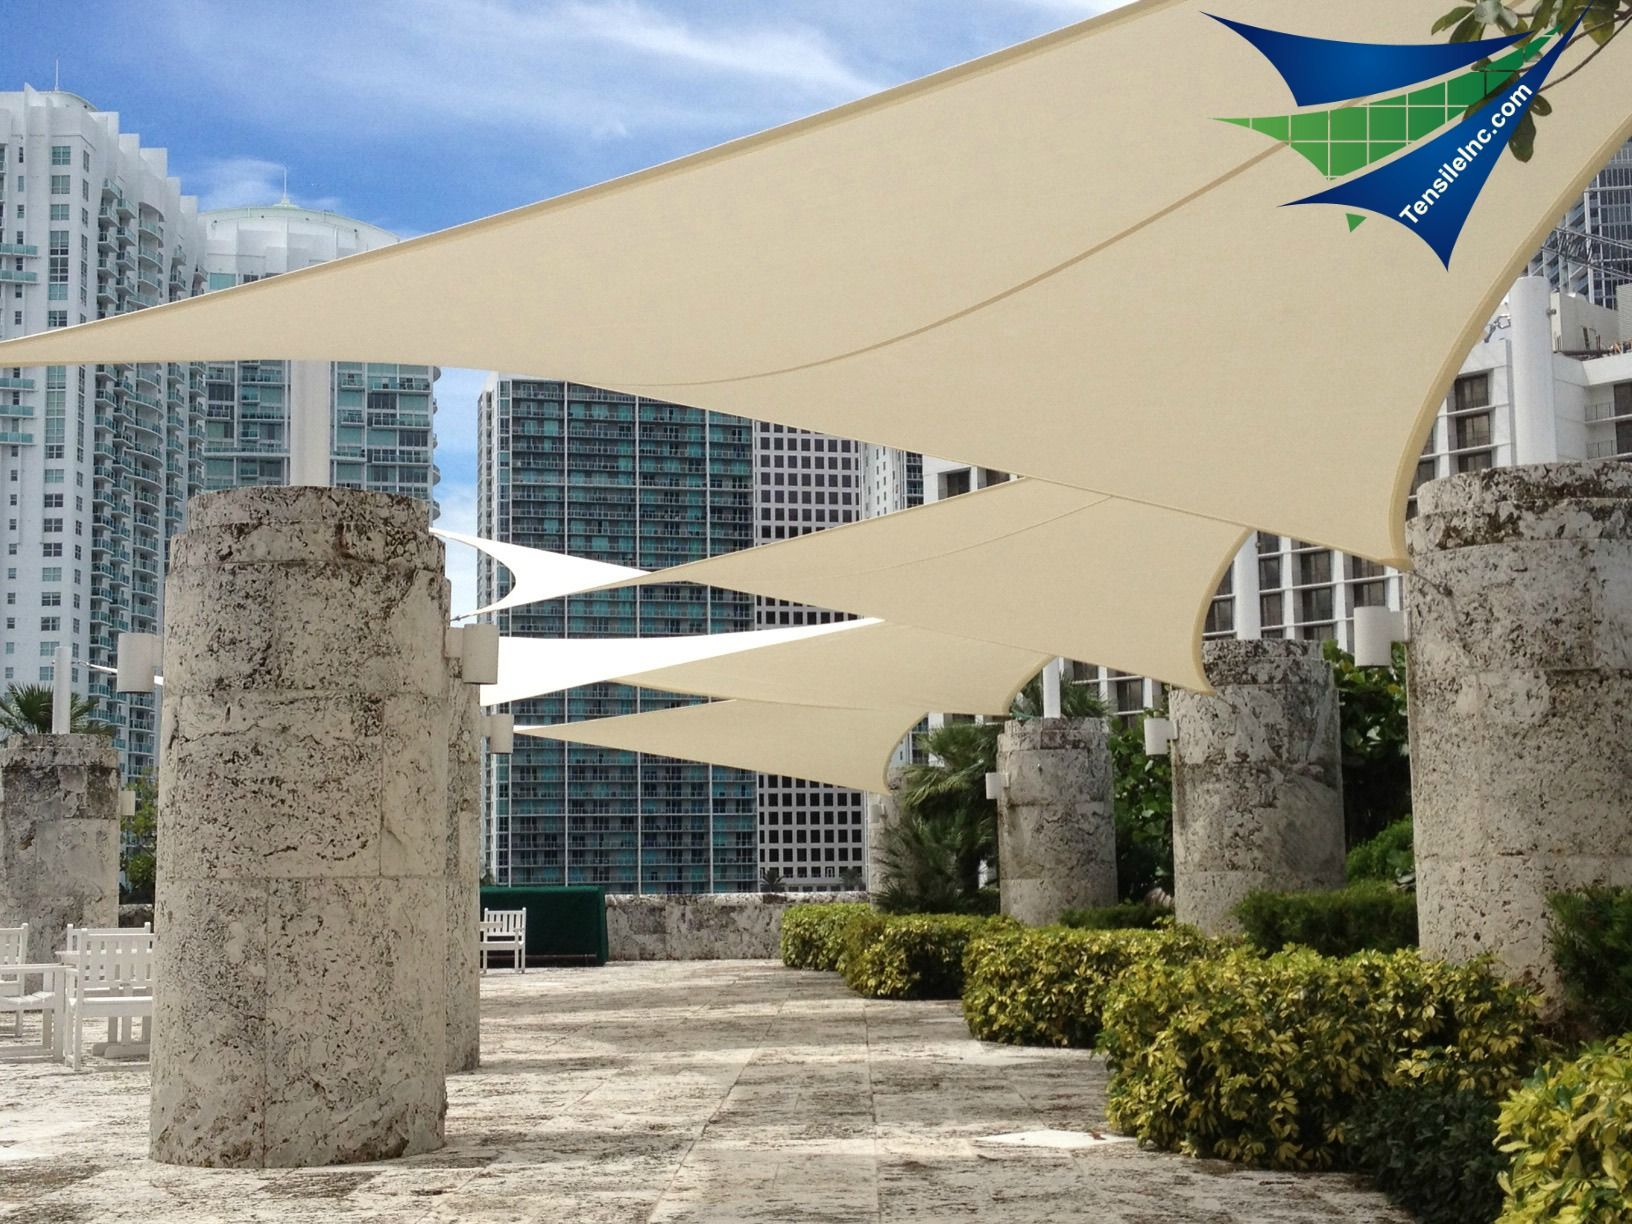 Retractable tensile canopy and shade systems for commercial resort or residential applications. TensileInc. & Retractable tensile canopy and shade systems for commercial ...